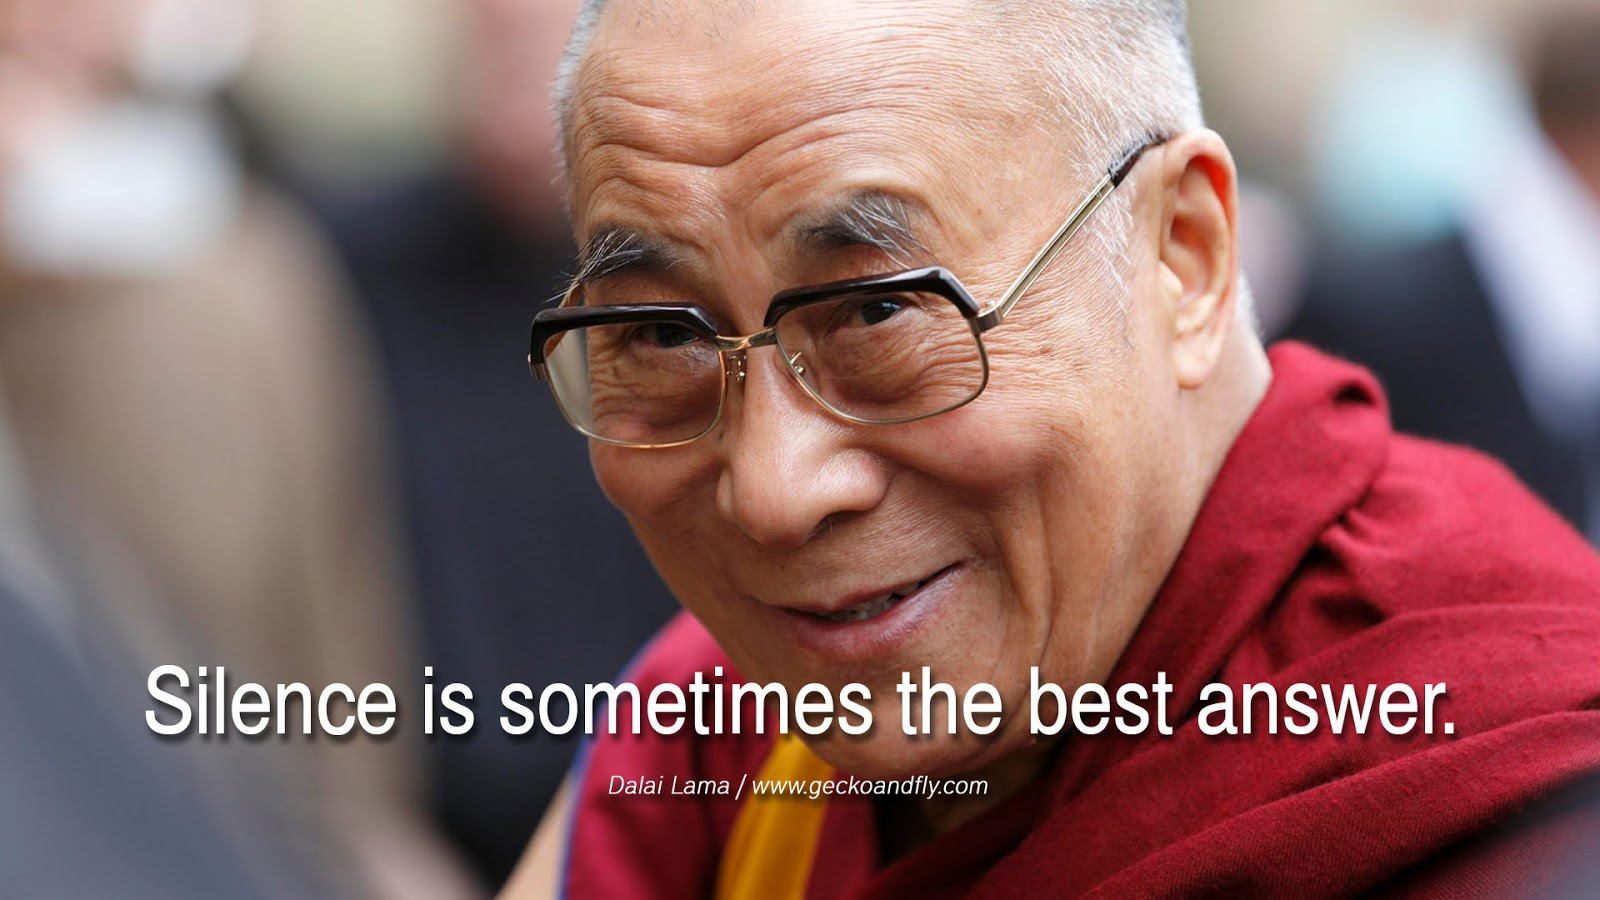 the dalai lama essay Dalai lama essay - get a 100% authentic, plagiarism-free thesis you could only dream about in our academic writing service papers and essays at most affordable prices modify the way you do your assignment with our time-tested service.